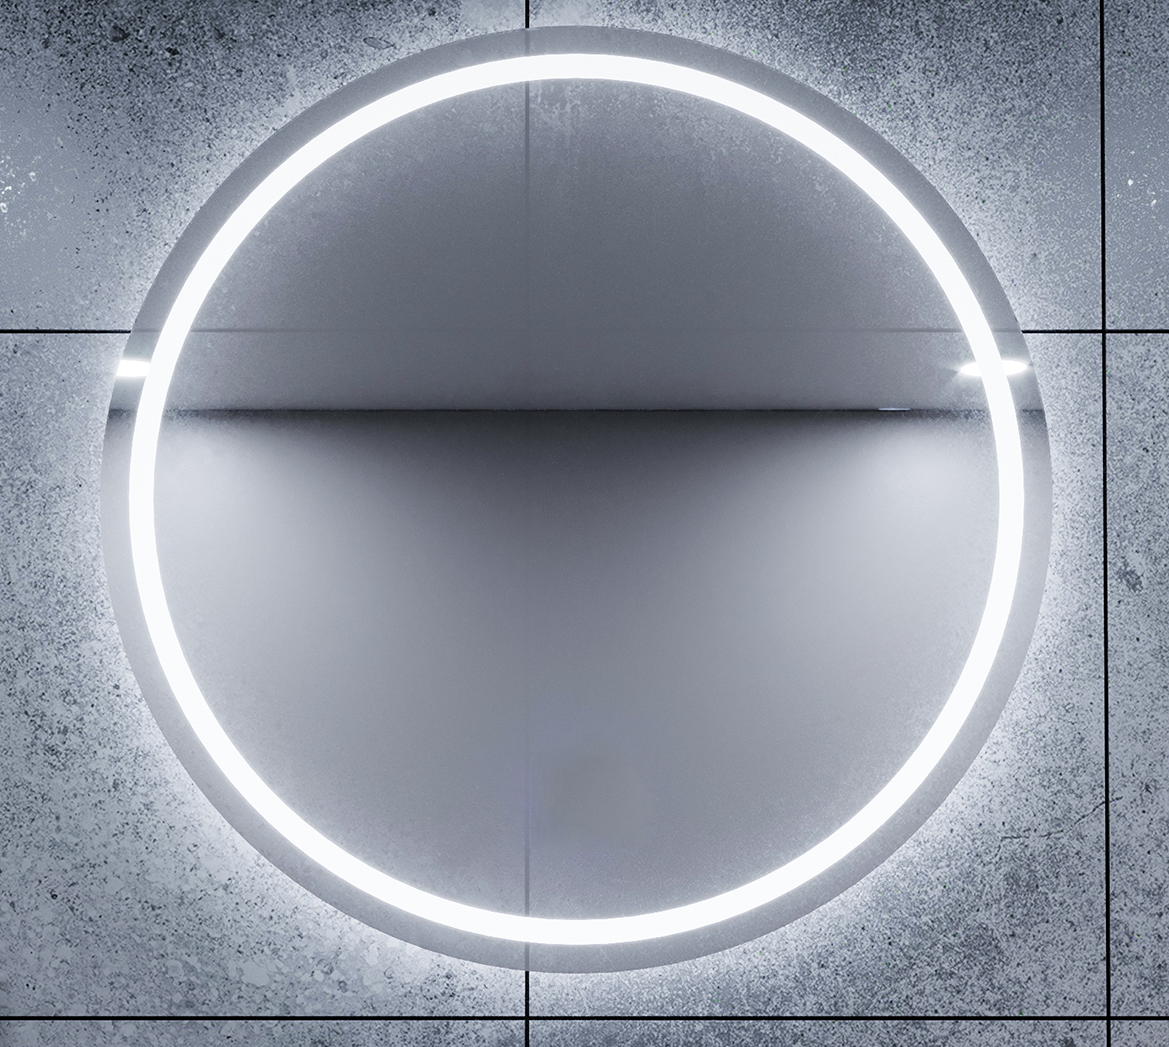 800X30mm LED MIRROR BACKLIT WITH DEMISTER AND TOUCH BUTTON